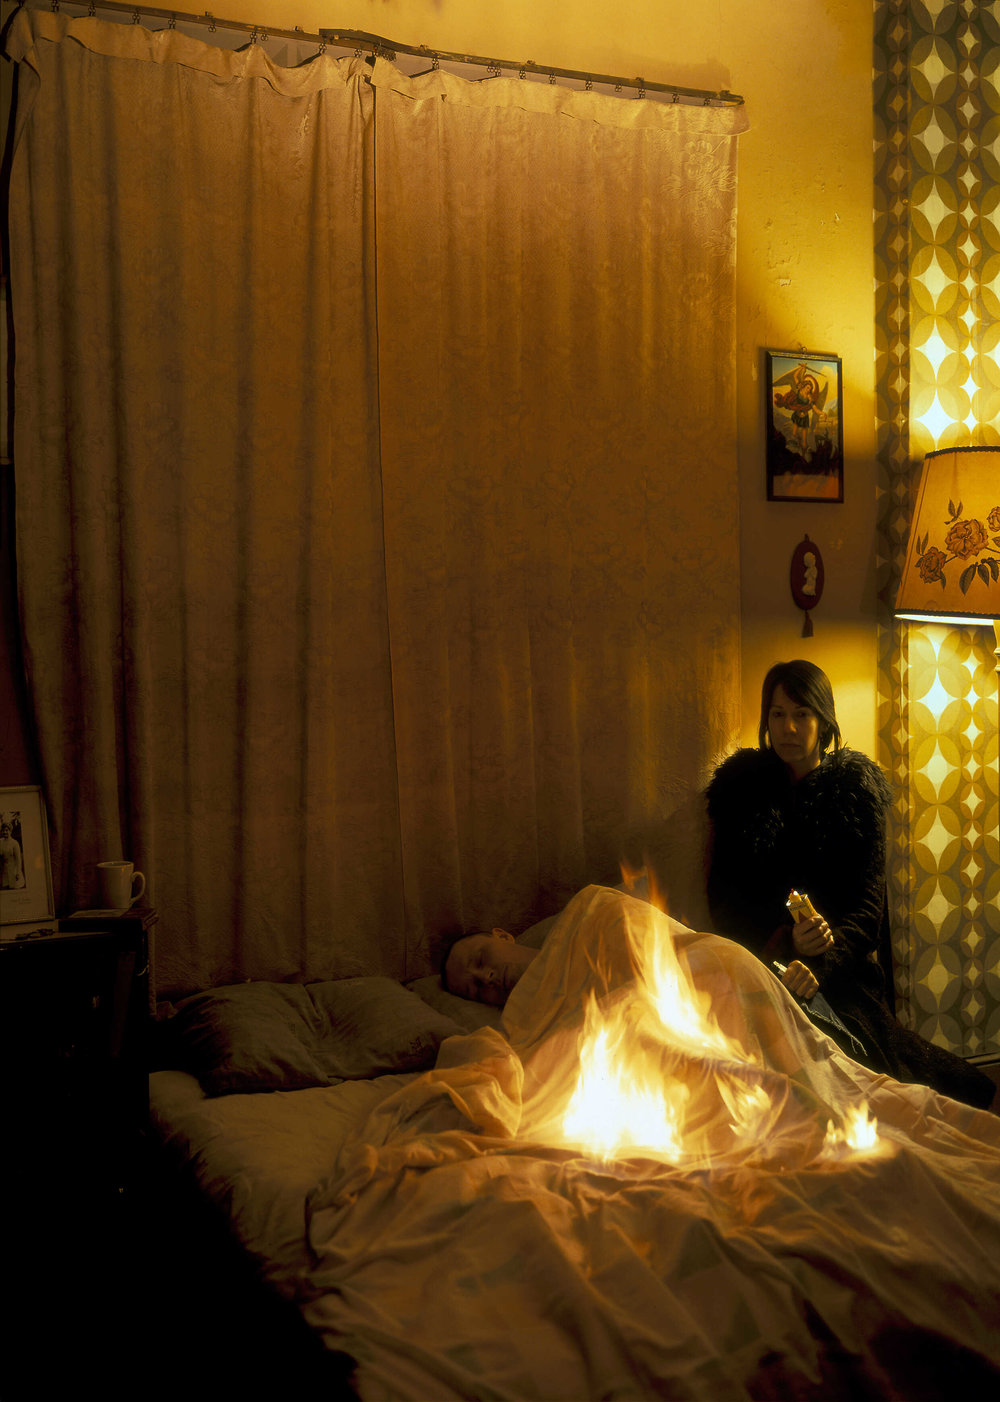 Lover Set on Fire in Bed (2003) Lambada print 152.4 x 121.9 cm